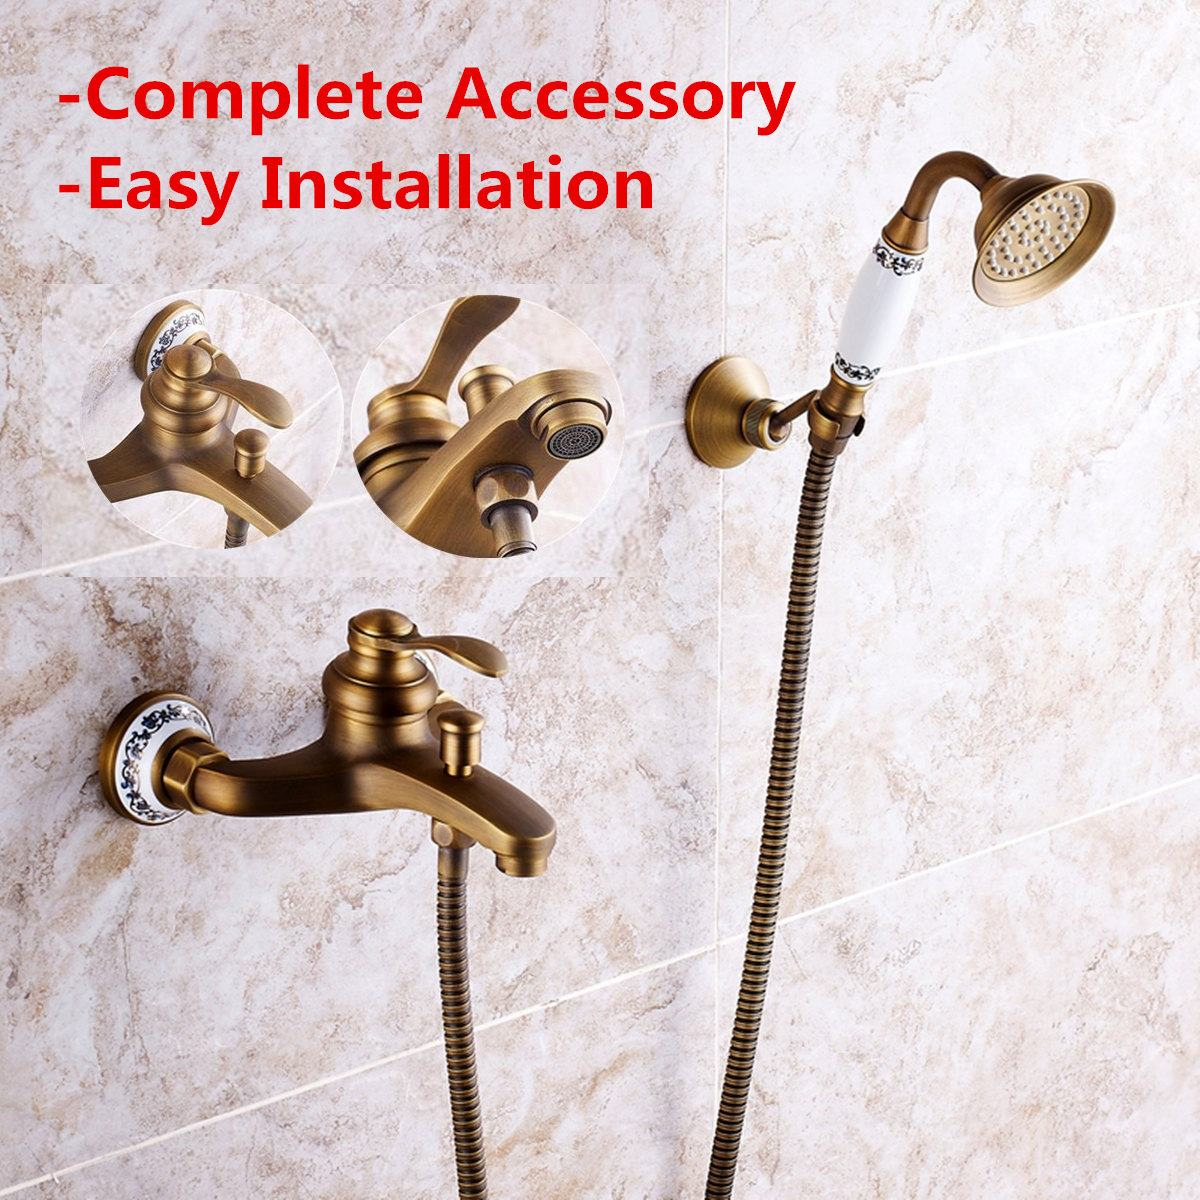 Antique Brass Shower Faucet Sets Head Bathroom Faucets Bath Tub Spout Hand Shower Wall Mounted Held Mixer Tap Spray WaterfallAntique Brass Shower Faucet Sets Head Bathroom Faucets Bath Tub Spout Hand Shower Wall Mounted Held Mixer Tap Spray Waterfall